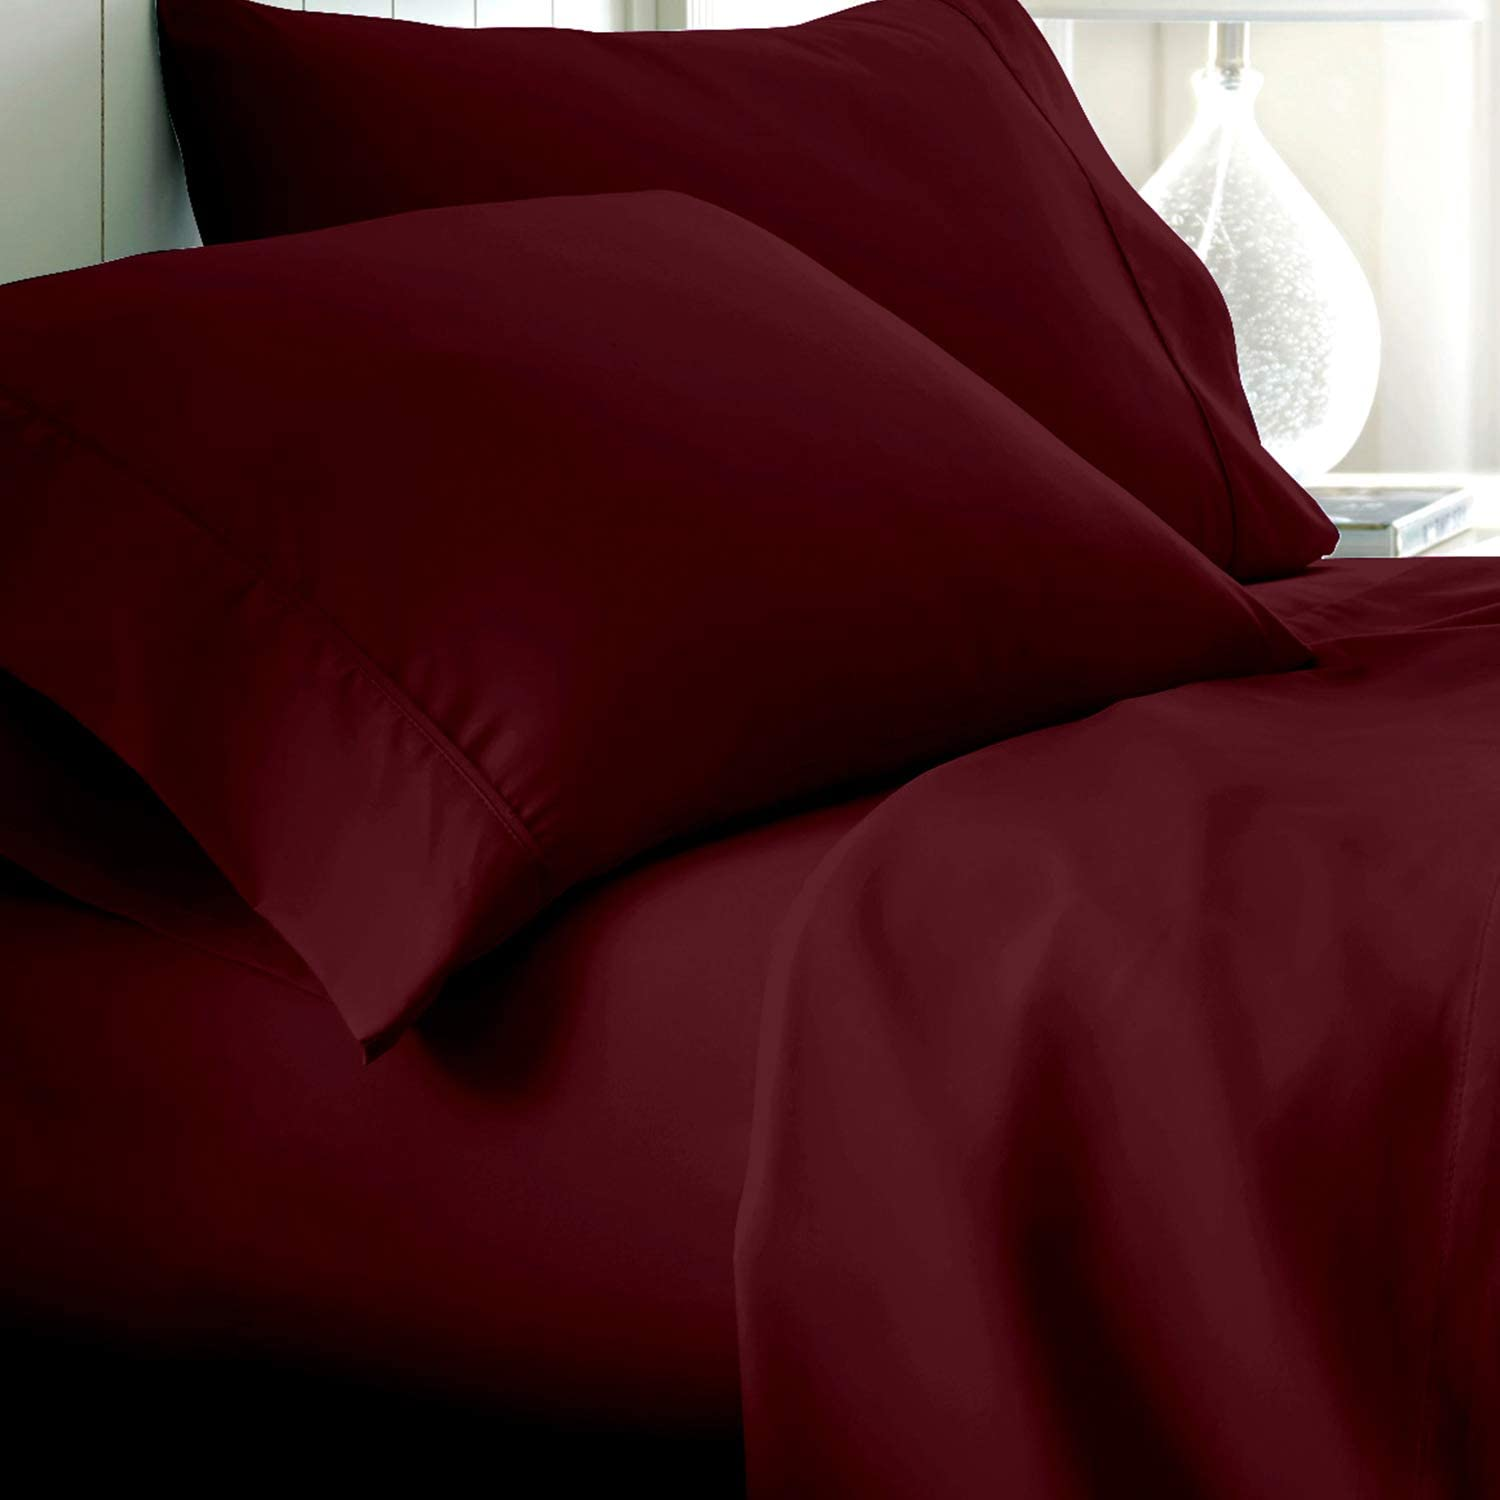 1000 Thread Count Egyptian Cotton All Bedding Items US Sizes Wine Stripe